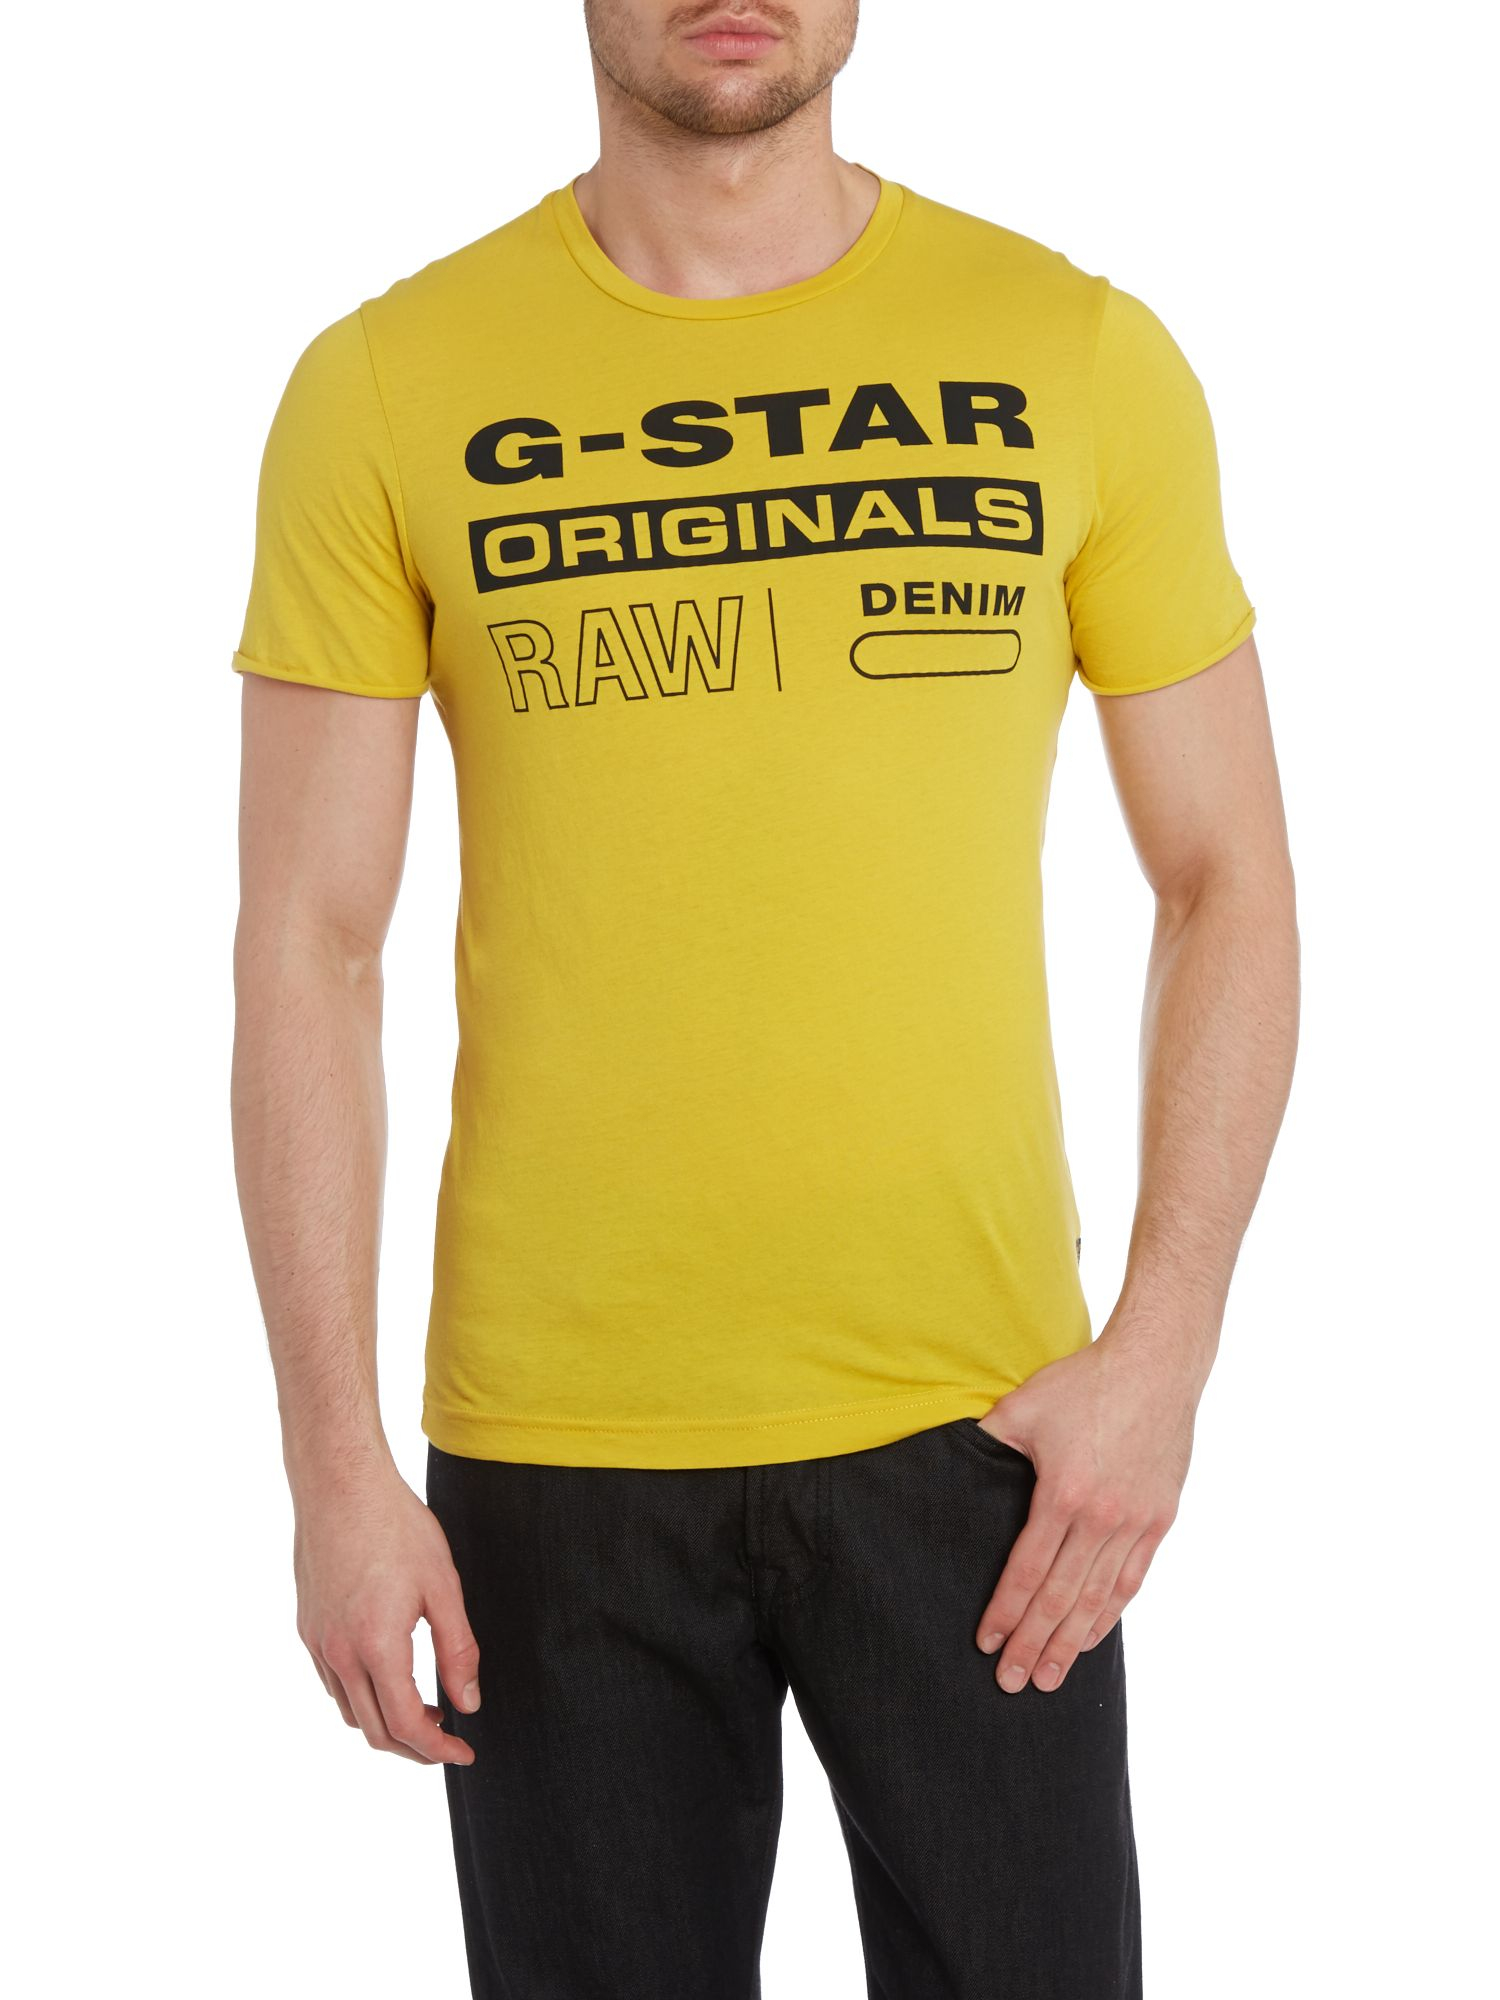 g star raw crew neck t shirt in yellow for men lyst. Black Bedroom Furniture Sets. Home Design Ideas